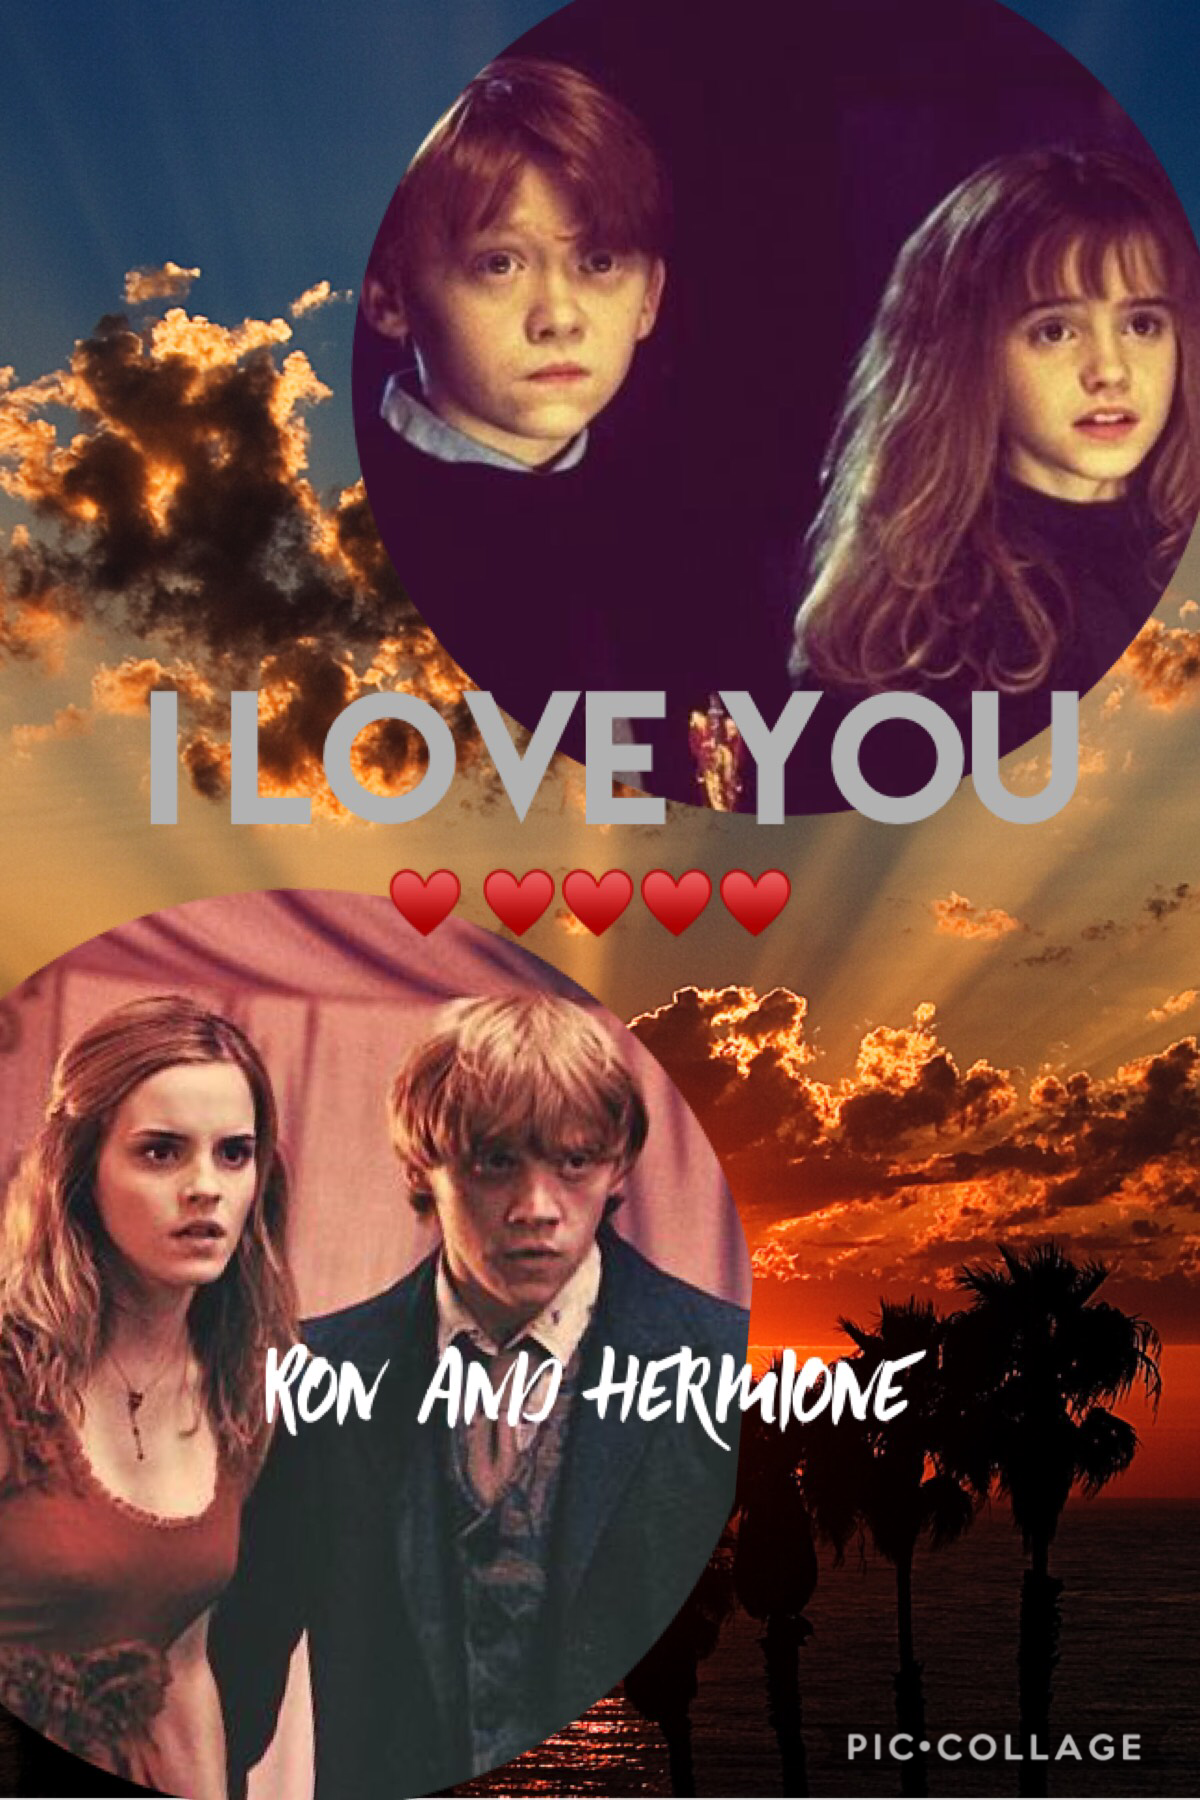 Collage by _harry_potter_nerd